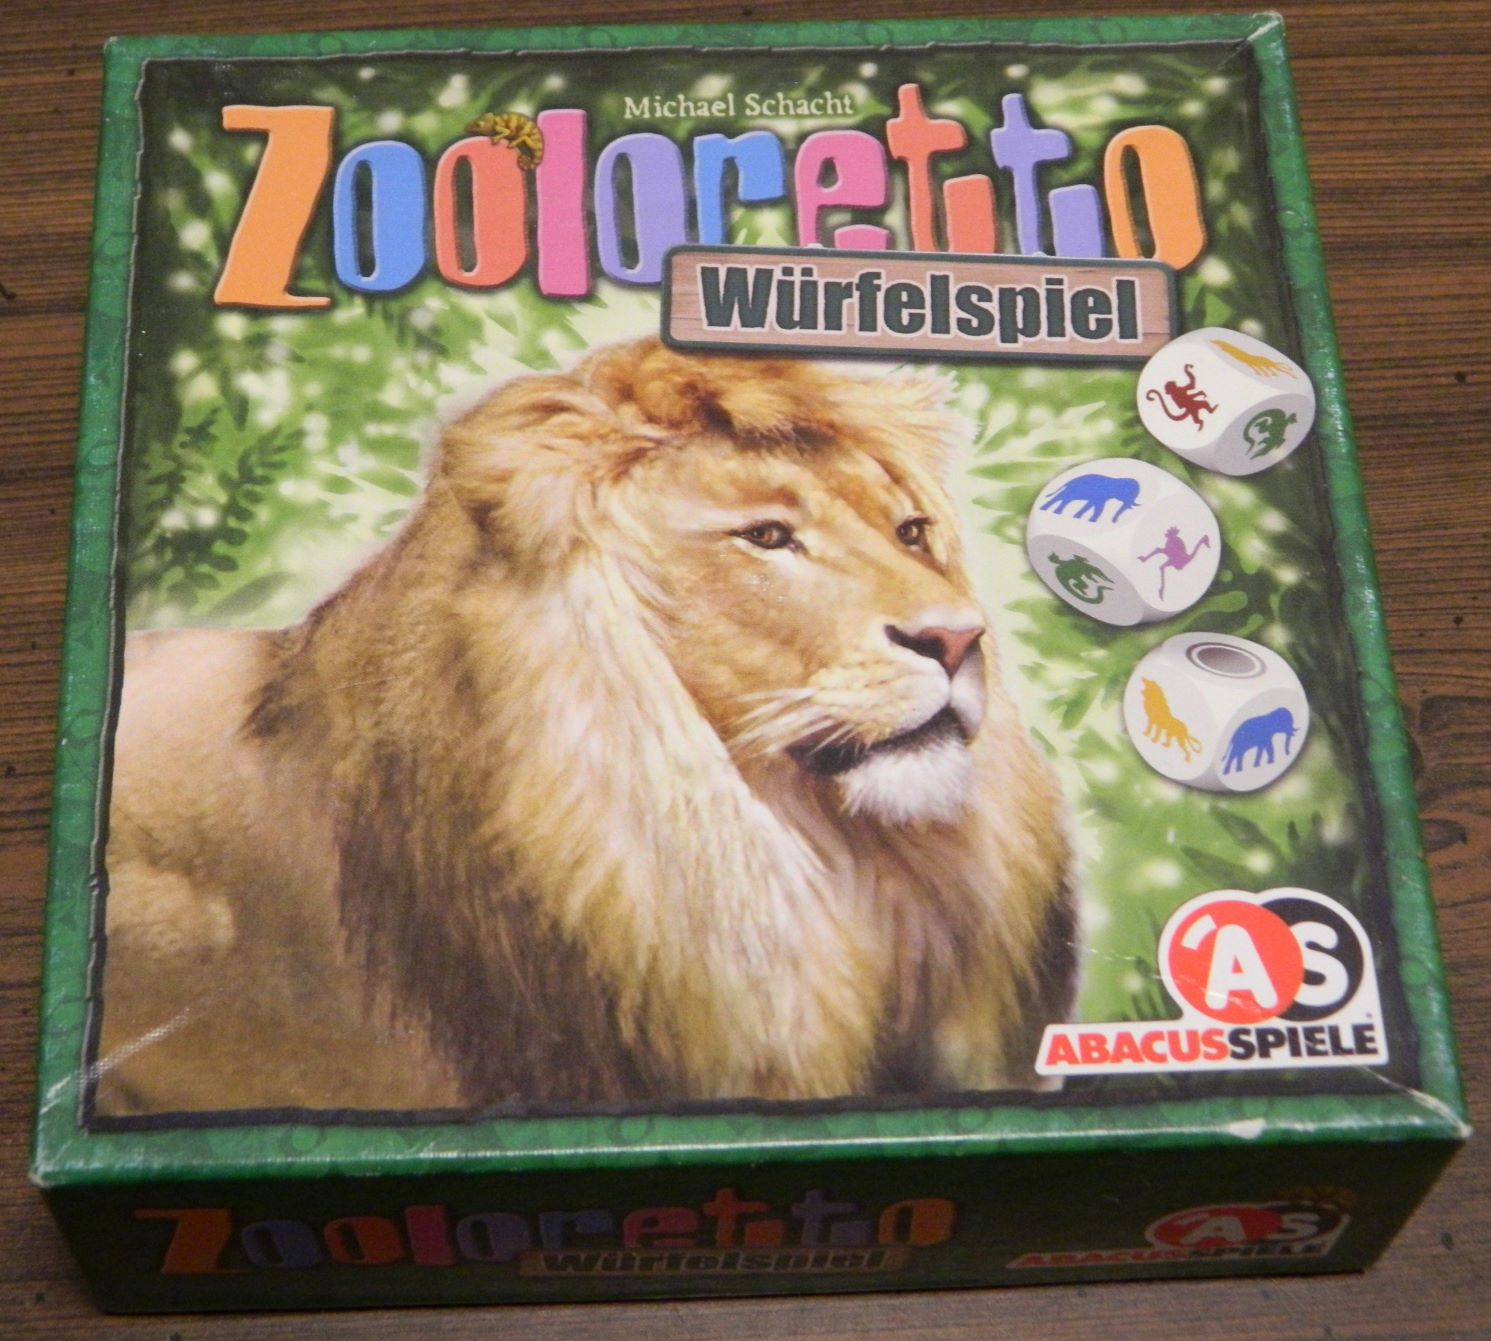 Box for Zooloretto